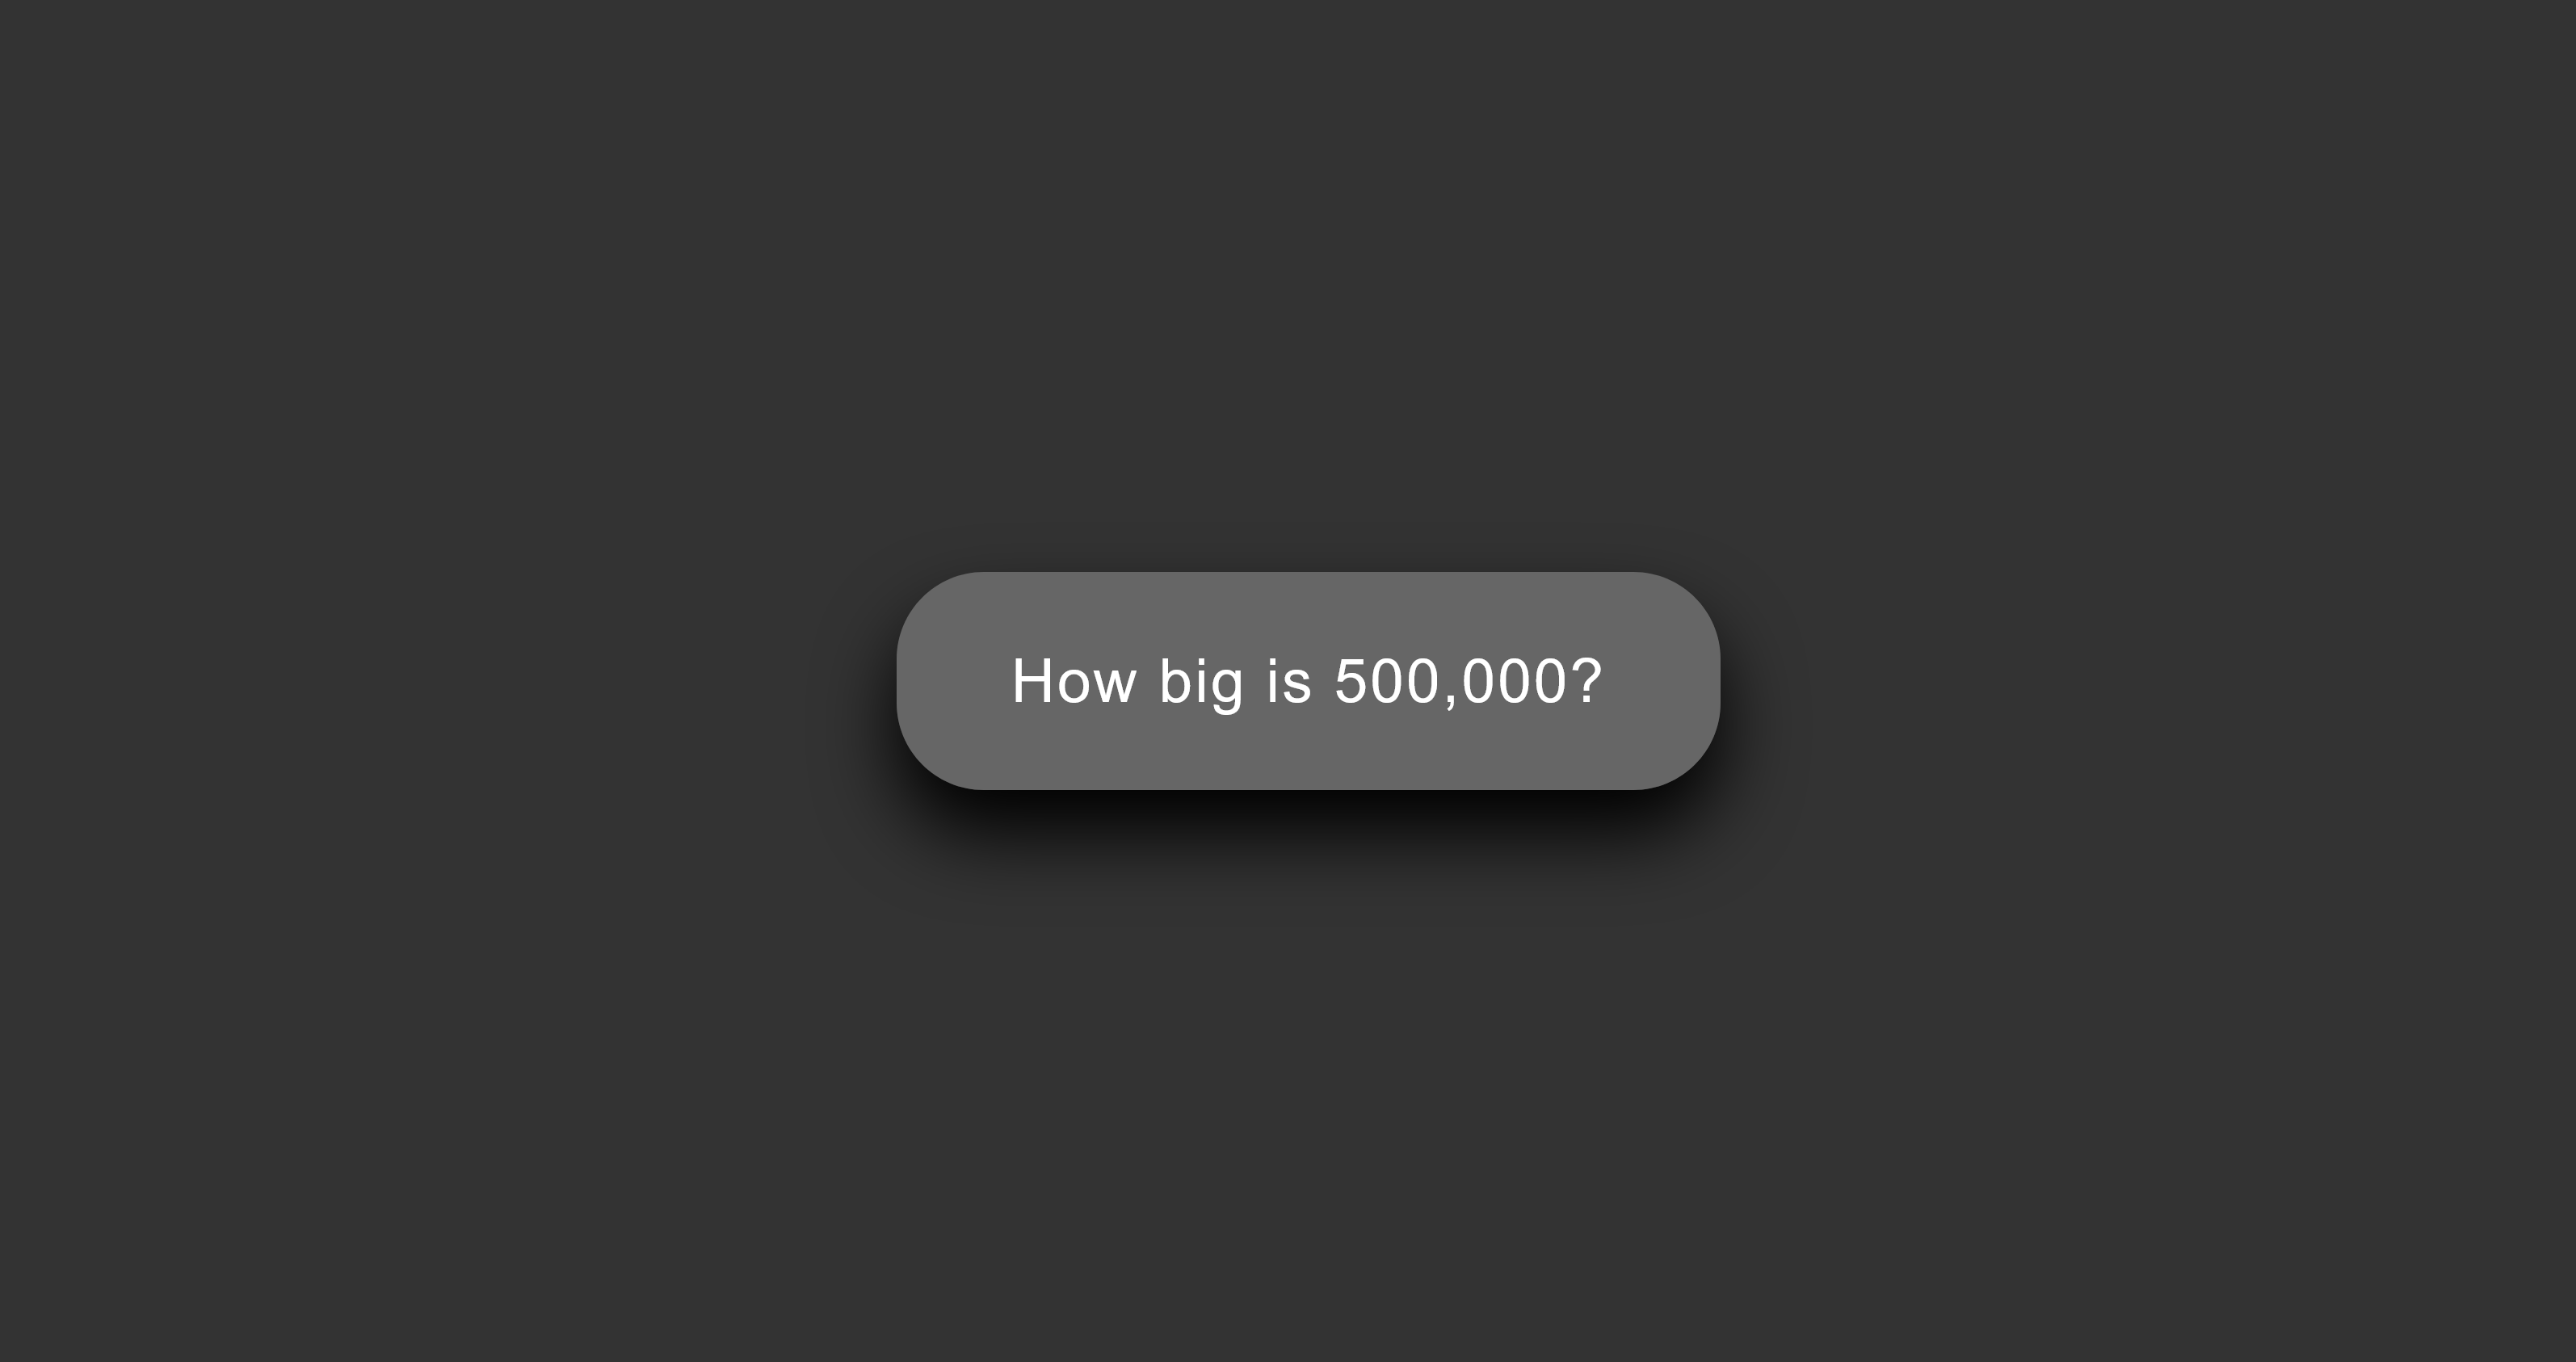 Screenshot of starting button for 'How big is 500,000?' data visualization about Covid deaths.